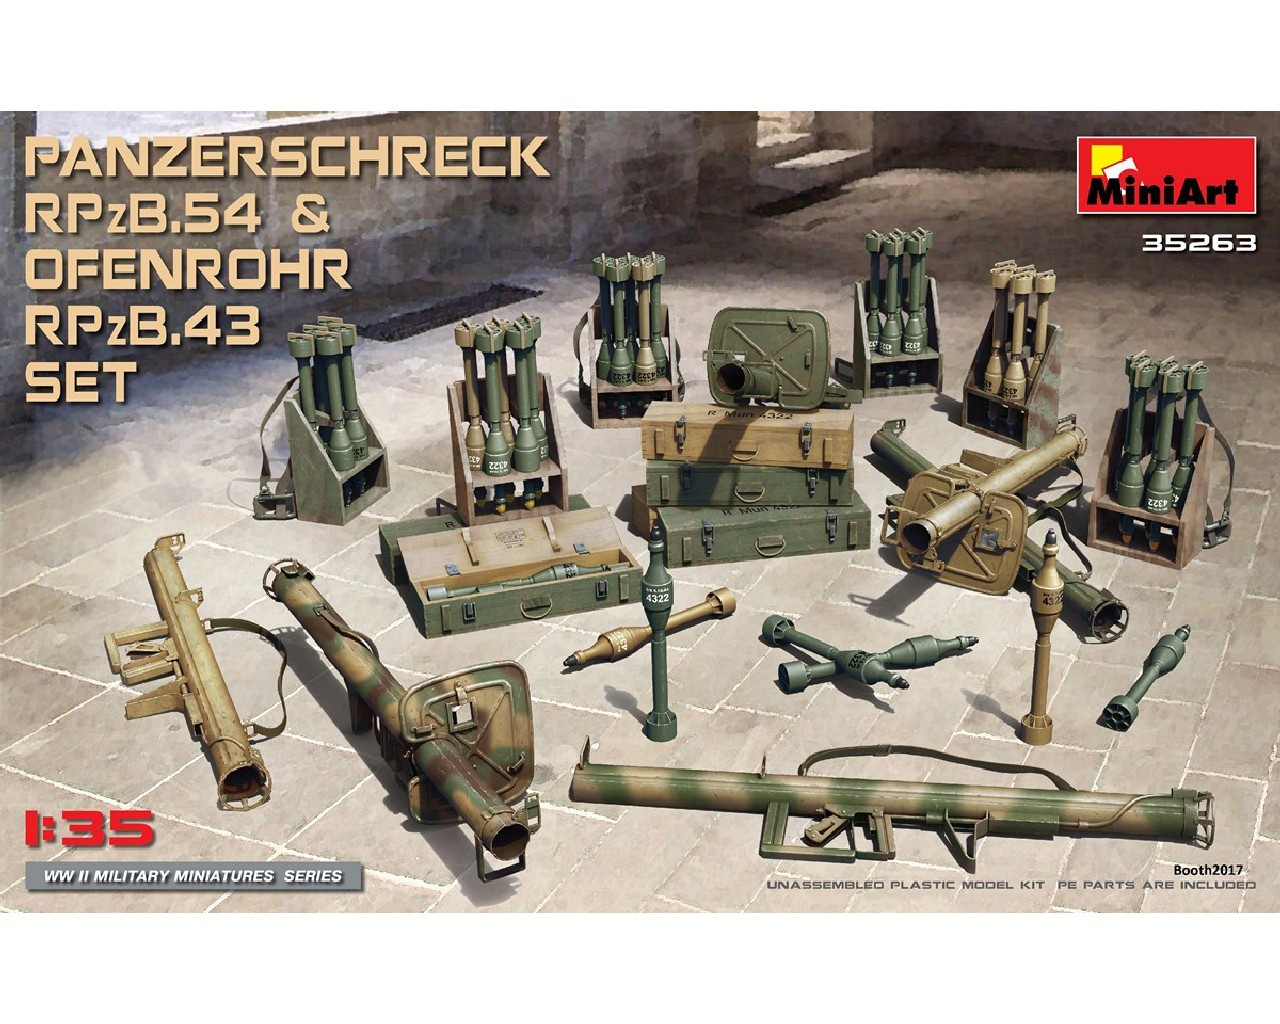 1/35 Panzerschreck RPzB.54 and Ofenrohr RPzB.43 Set